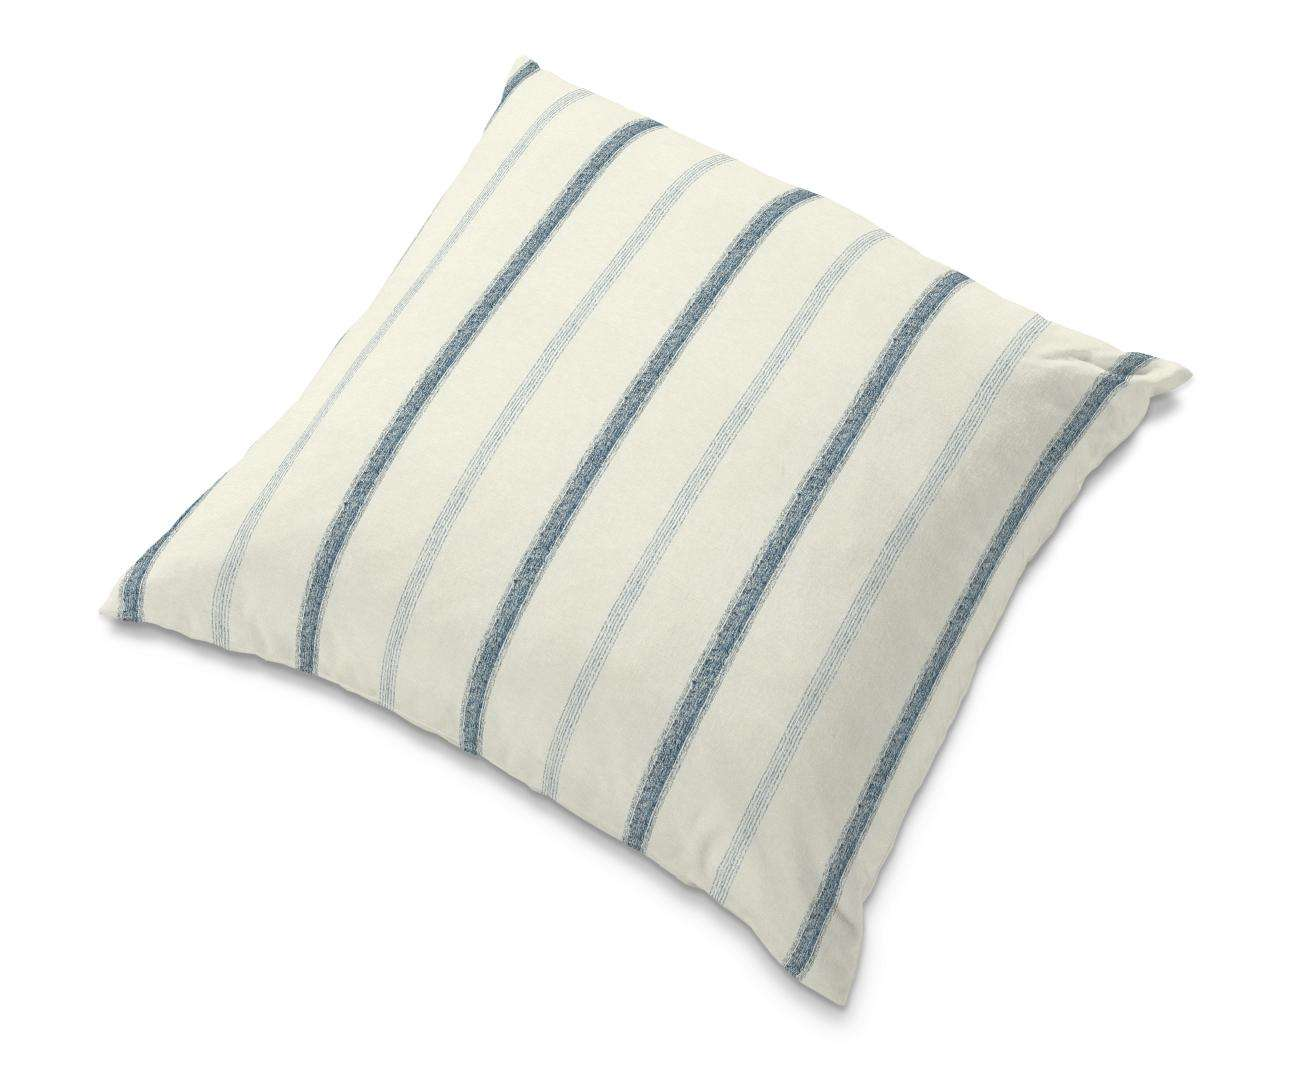 Tomelilla cushion cover 55 × 55 cm (22 × 22 inch) in collection Avinon, fabric: 129-66